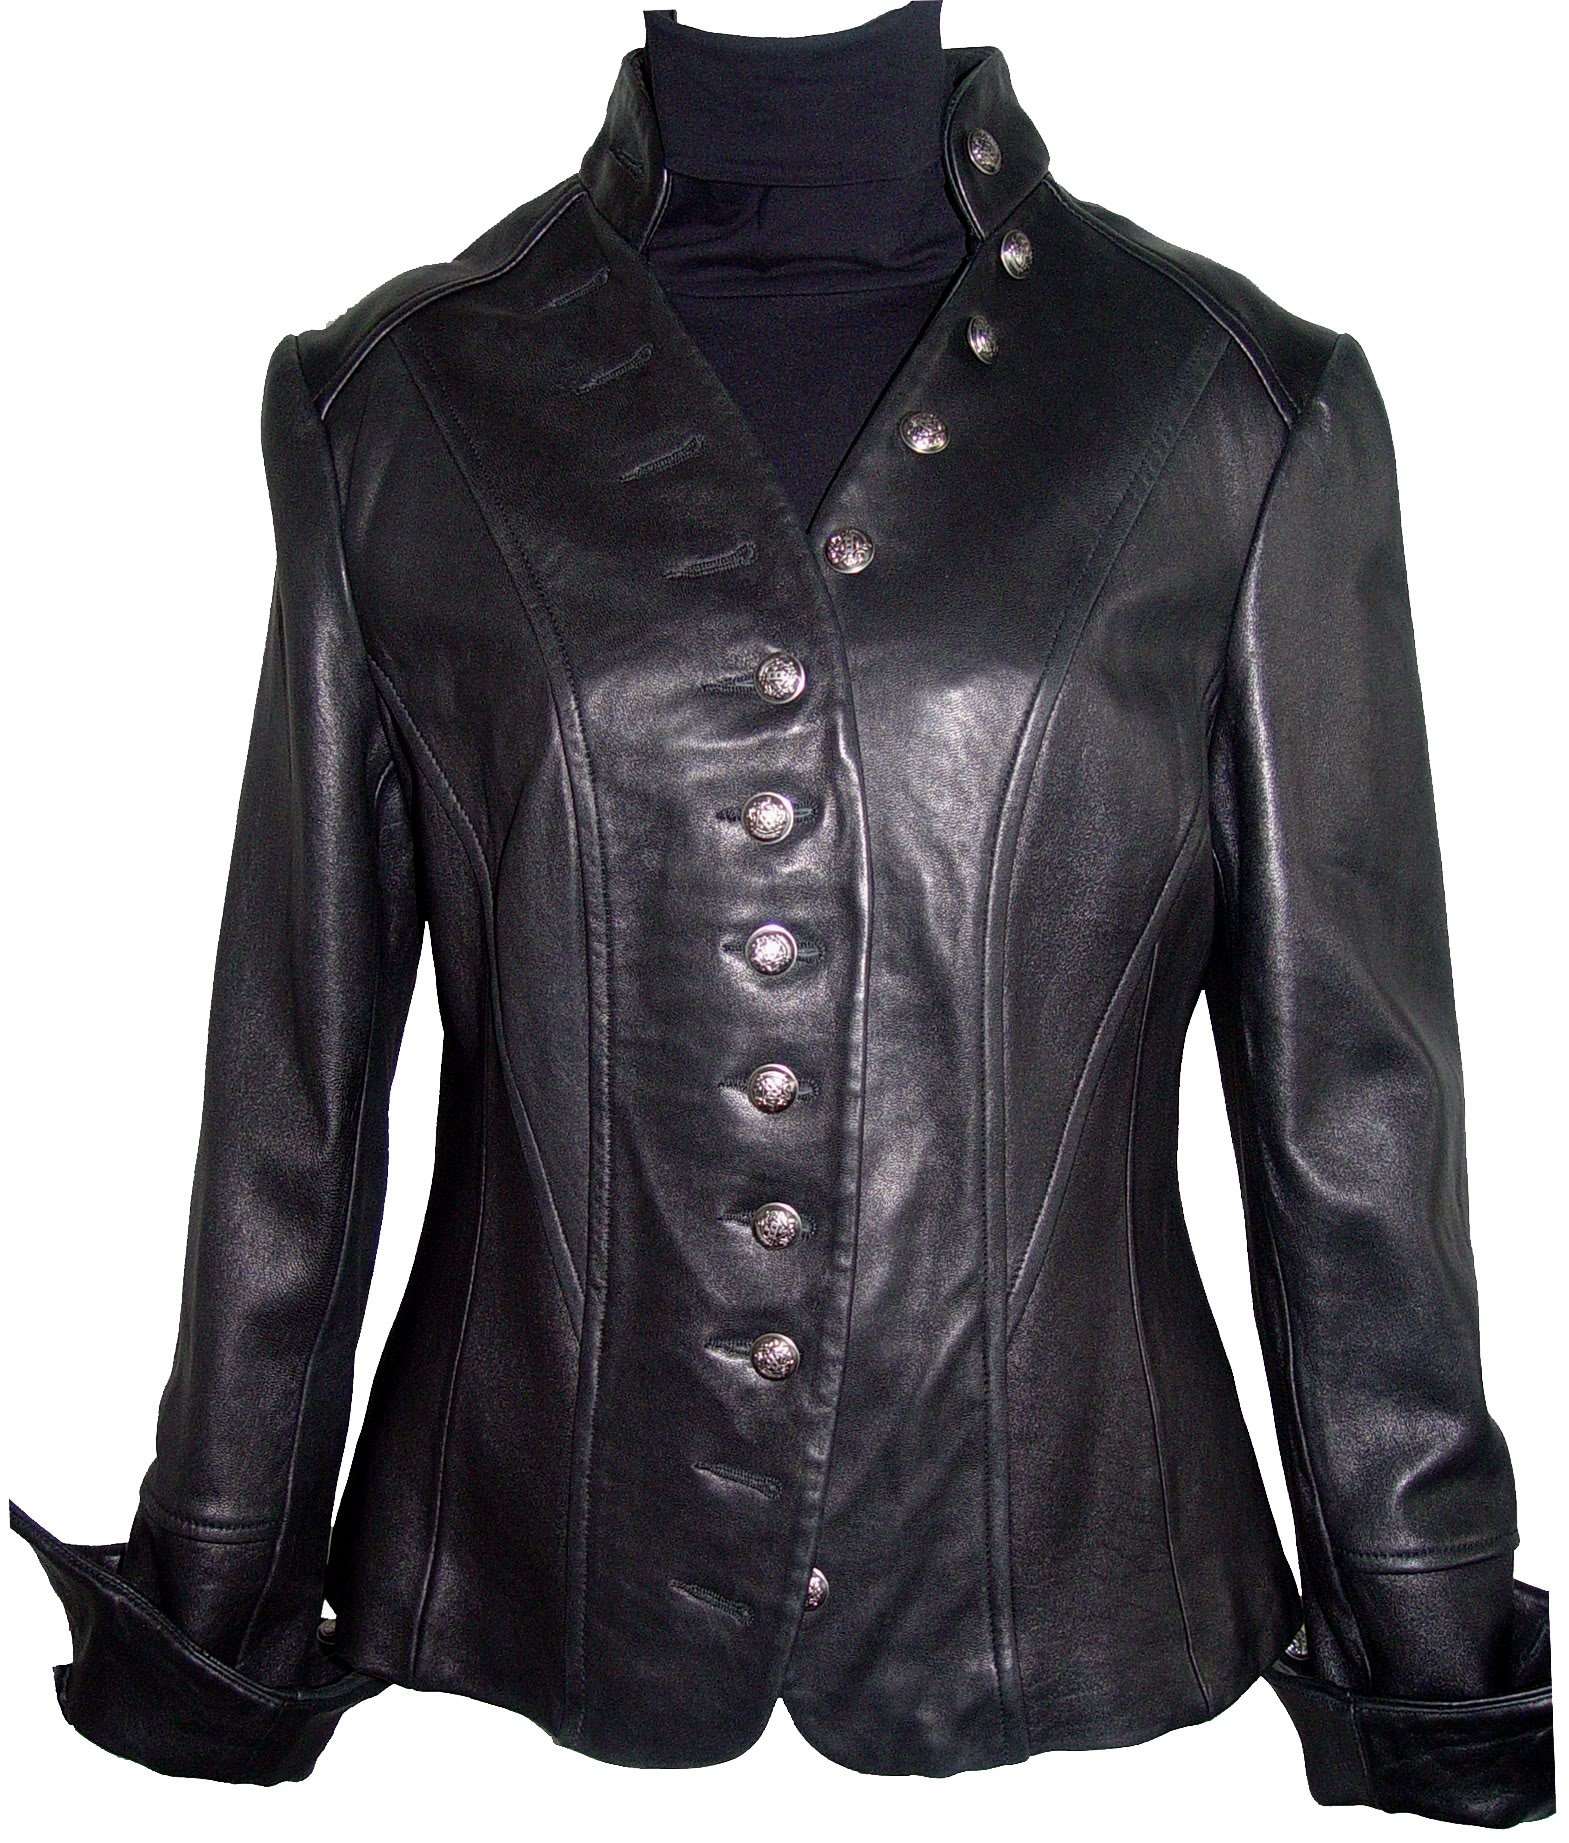 Johnny 4003 Best Cool Leather Blazer Jackets Fitted Business Clothing Soft Lamb by Johnnyblue